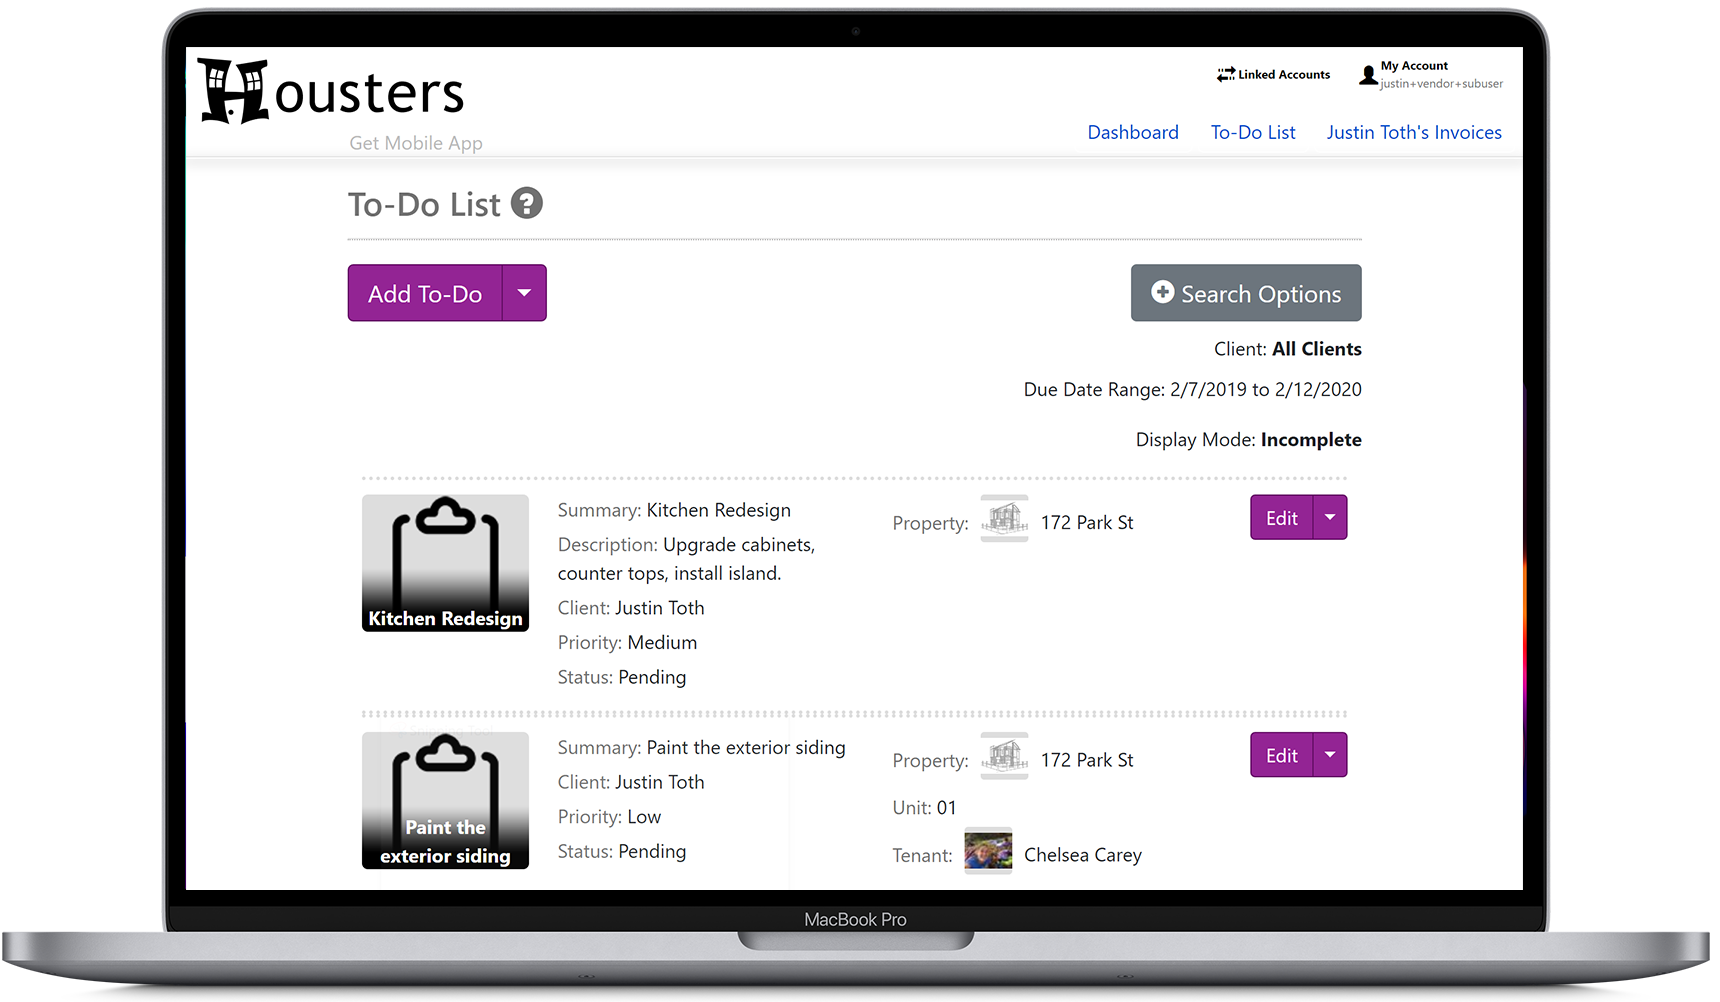 View the to-do list that is shared between you and your landlord and property manager clients on the contractor portal